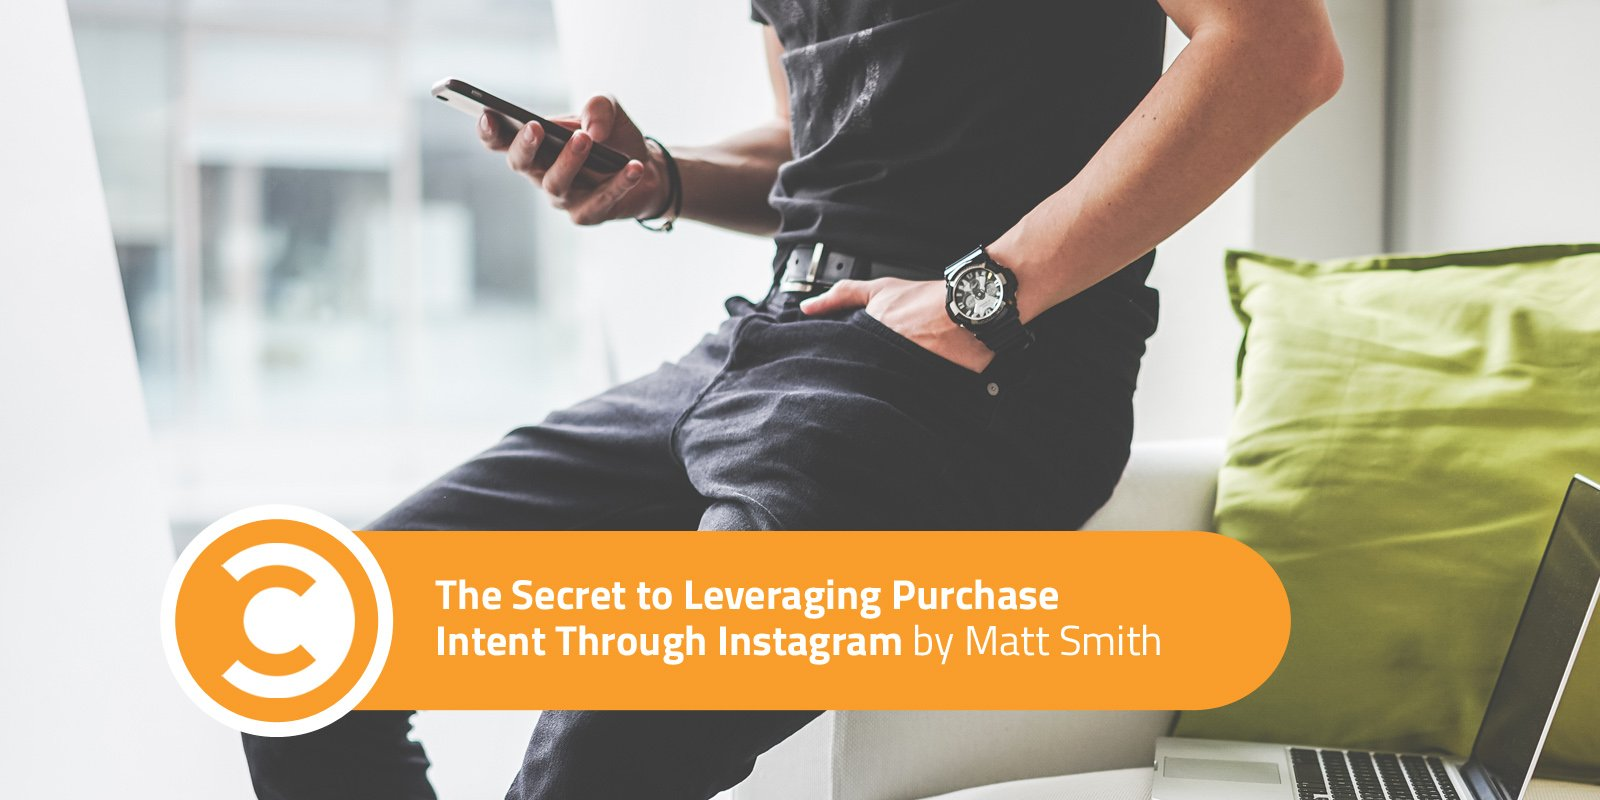 The Secret to Leveraging Purchase Intent Through Instagram